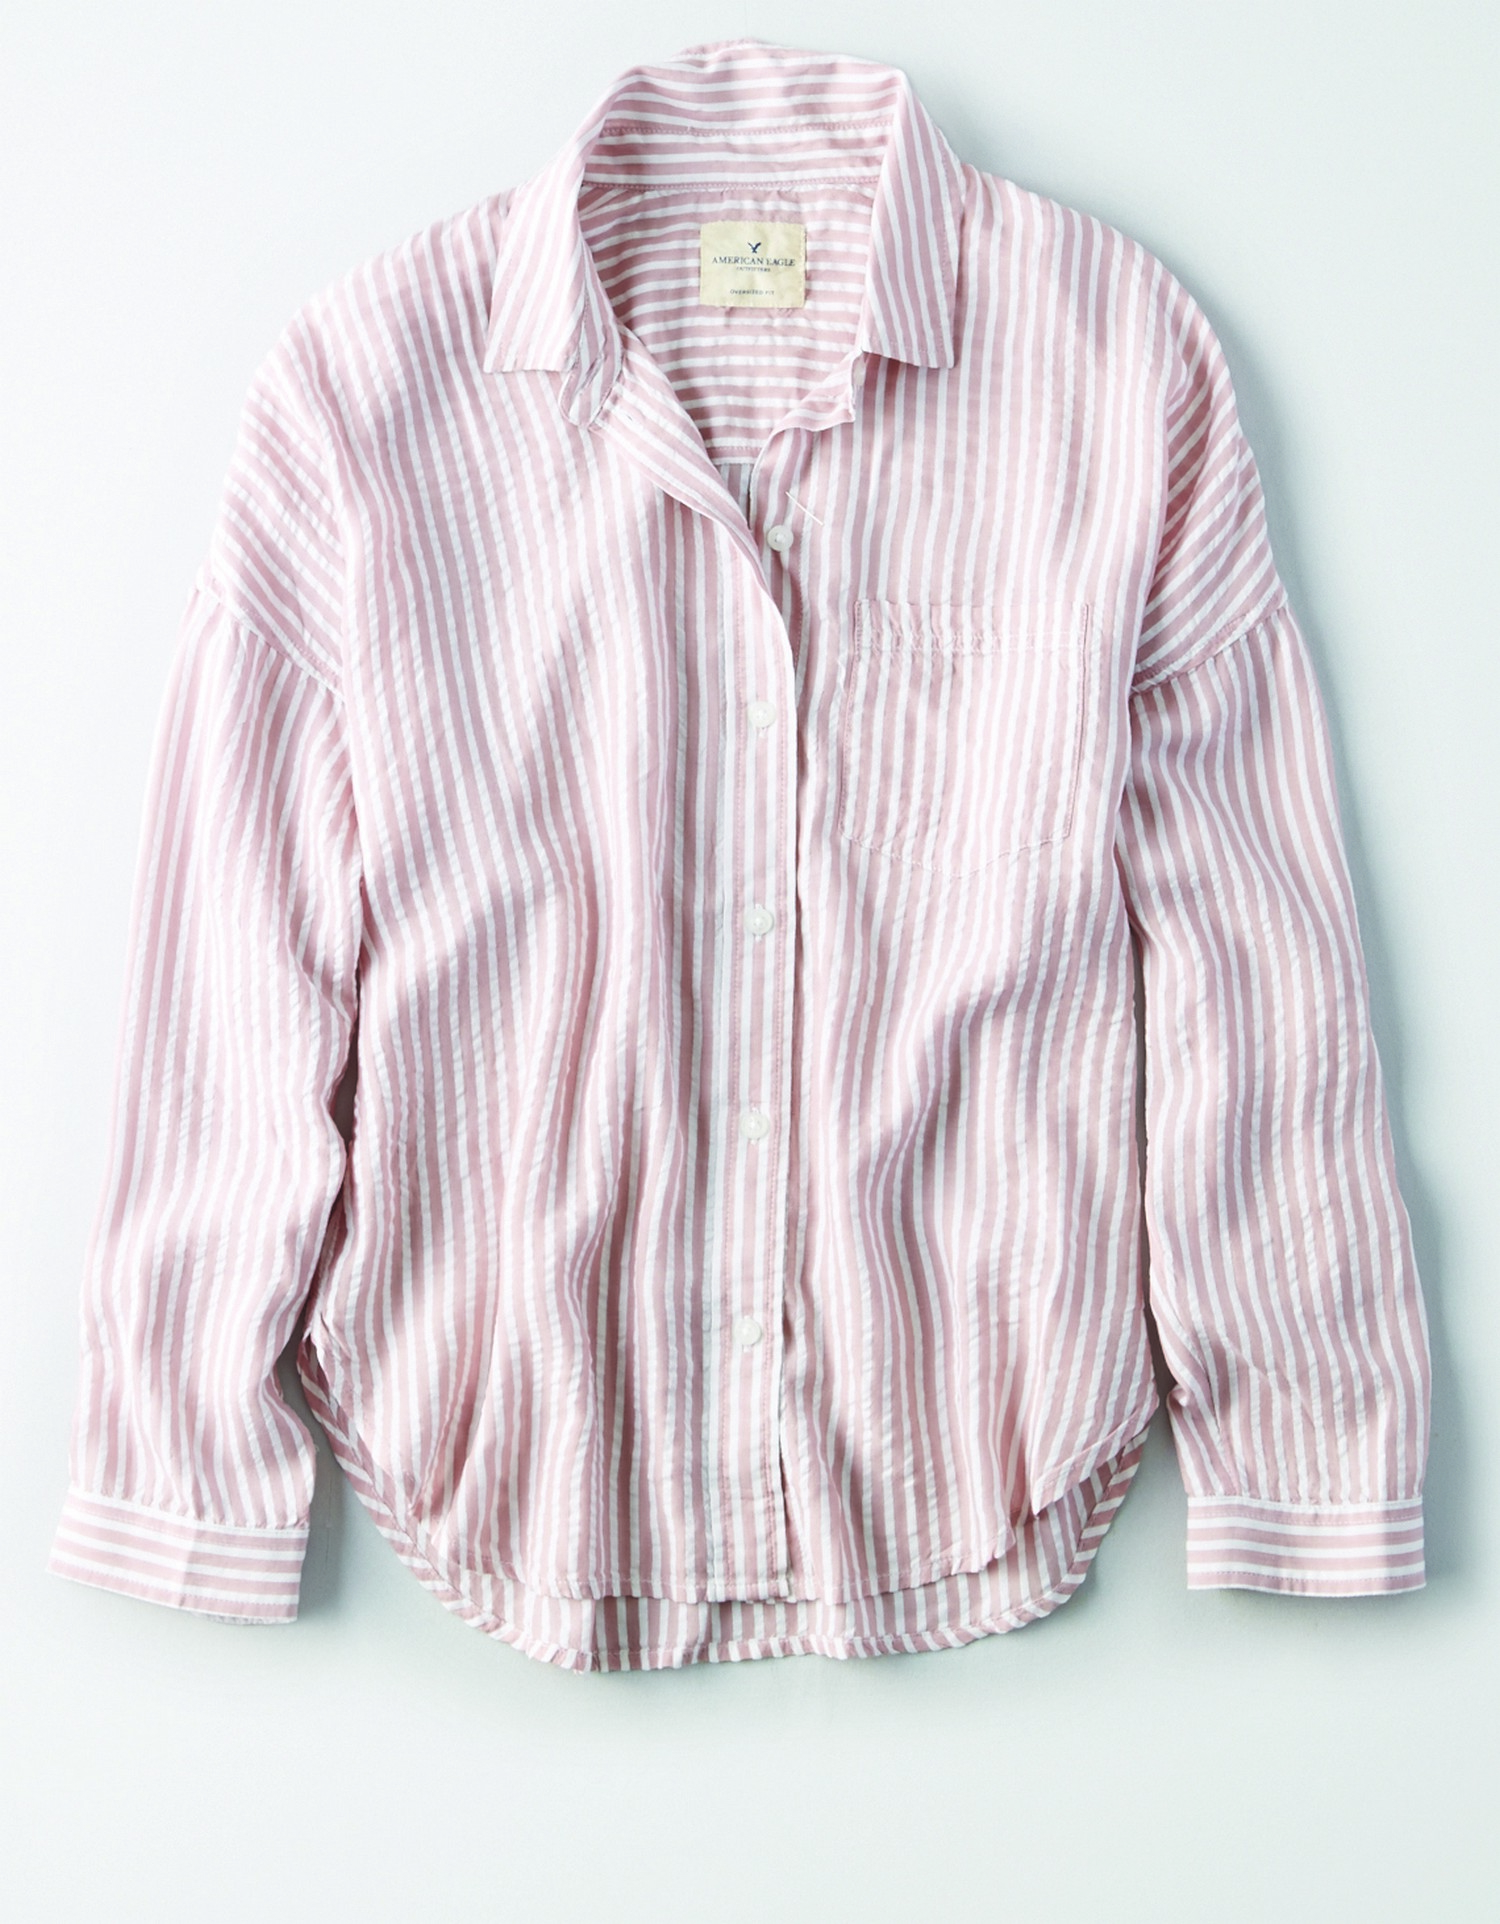 AE - W - Apparel - STRIPED DOLMAN - Light Pink and White Vertical Stripes - Button Down - Left Chest pocket - White Buttons BG *Tracked